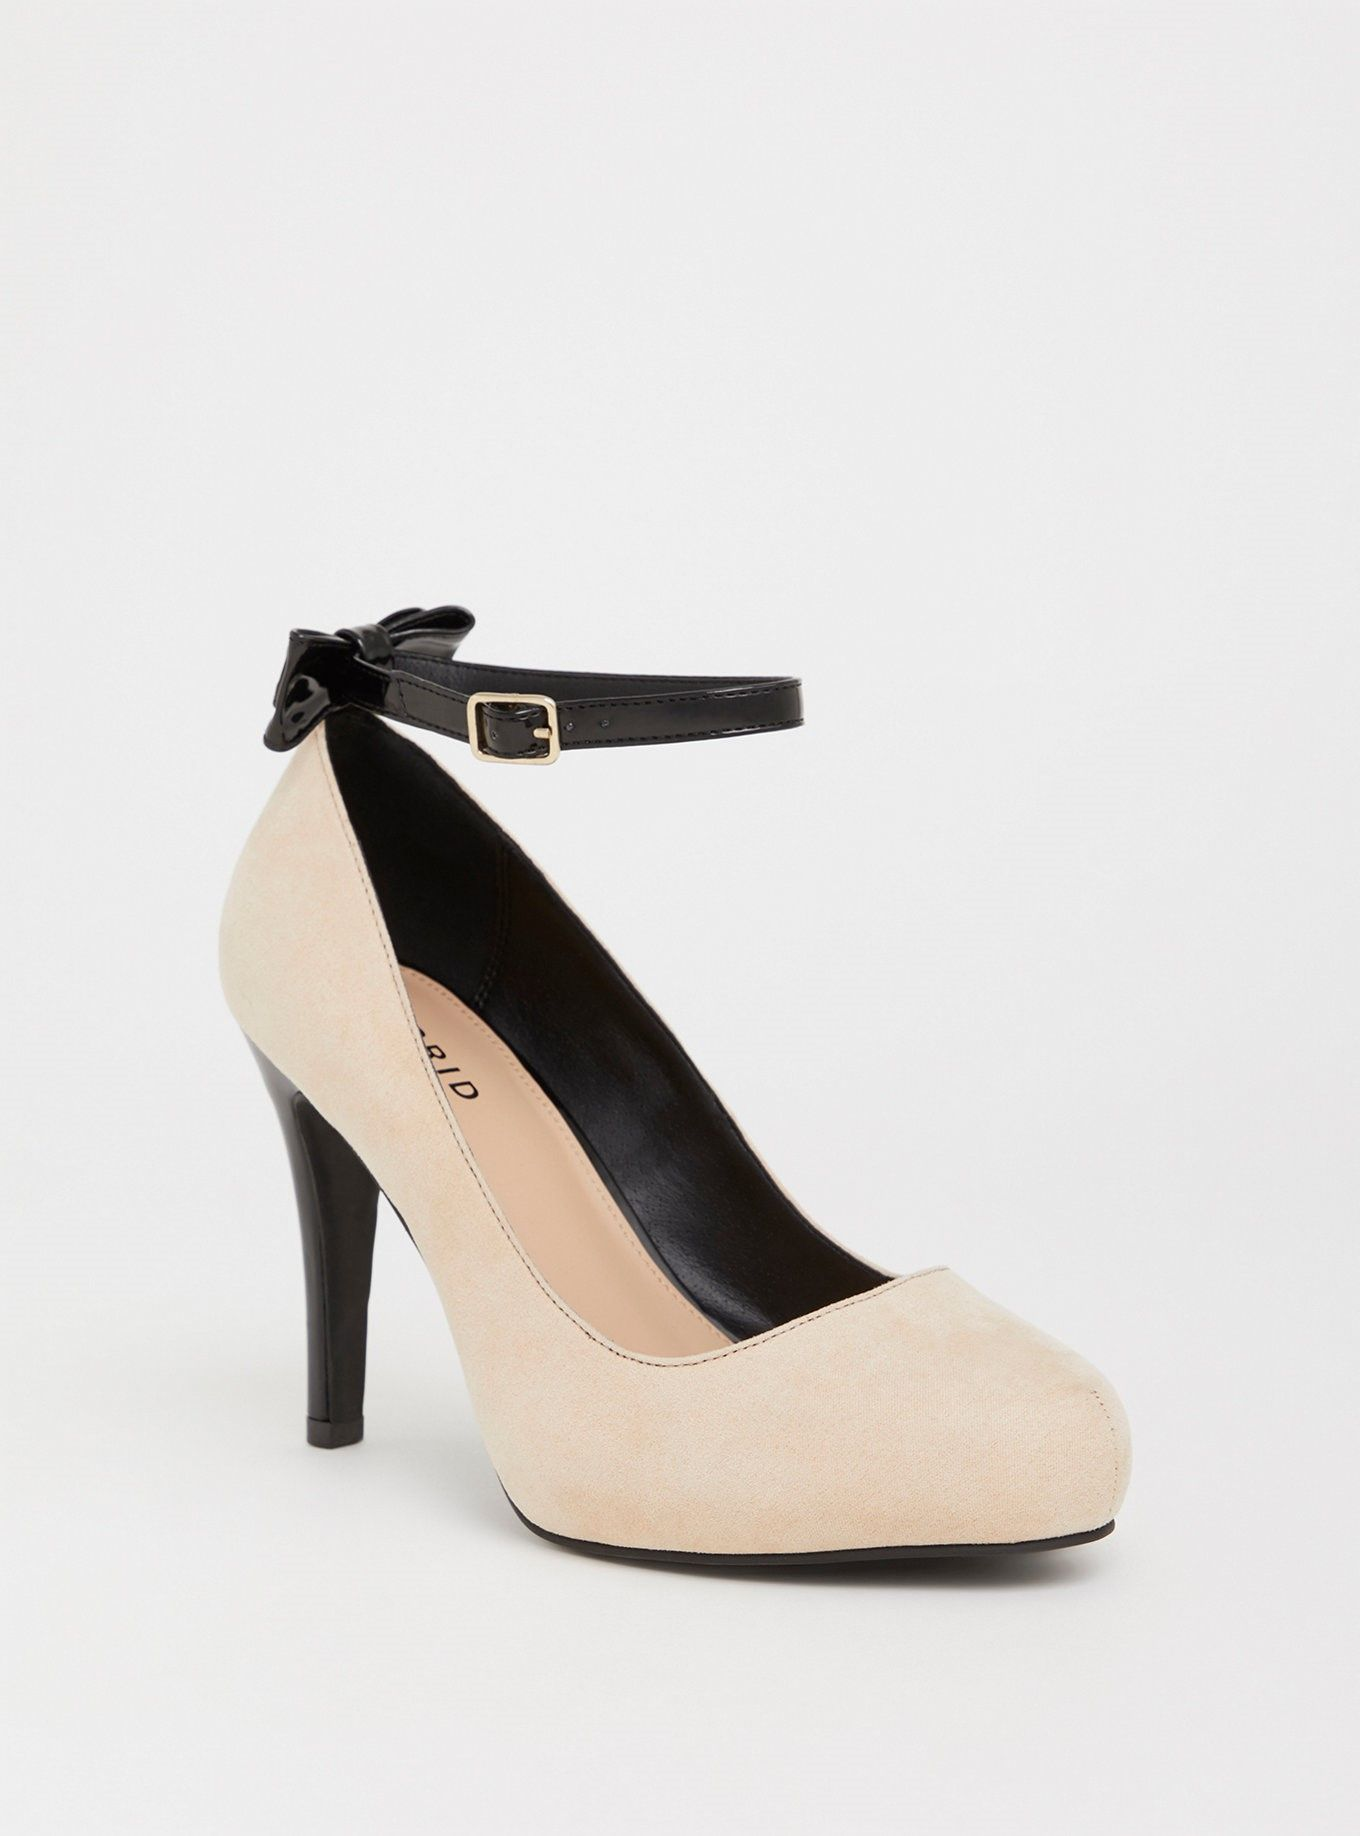 4bdb191fff9 Nude Faux Suede Pump With Patent Bow (Wide Width) - A patent faux leather  bow adorns a high heel pump for a bold feminine detail.